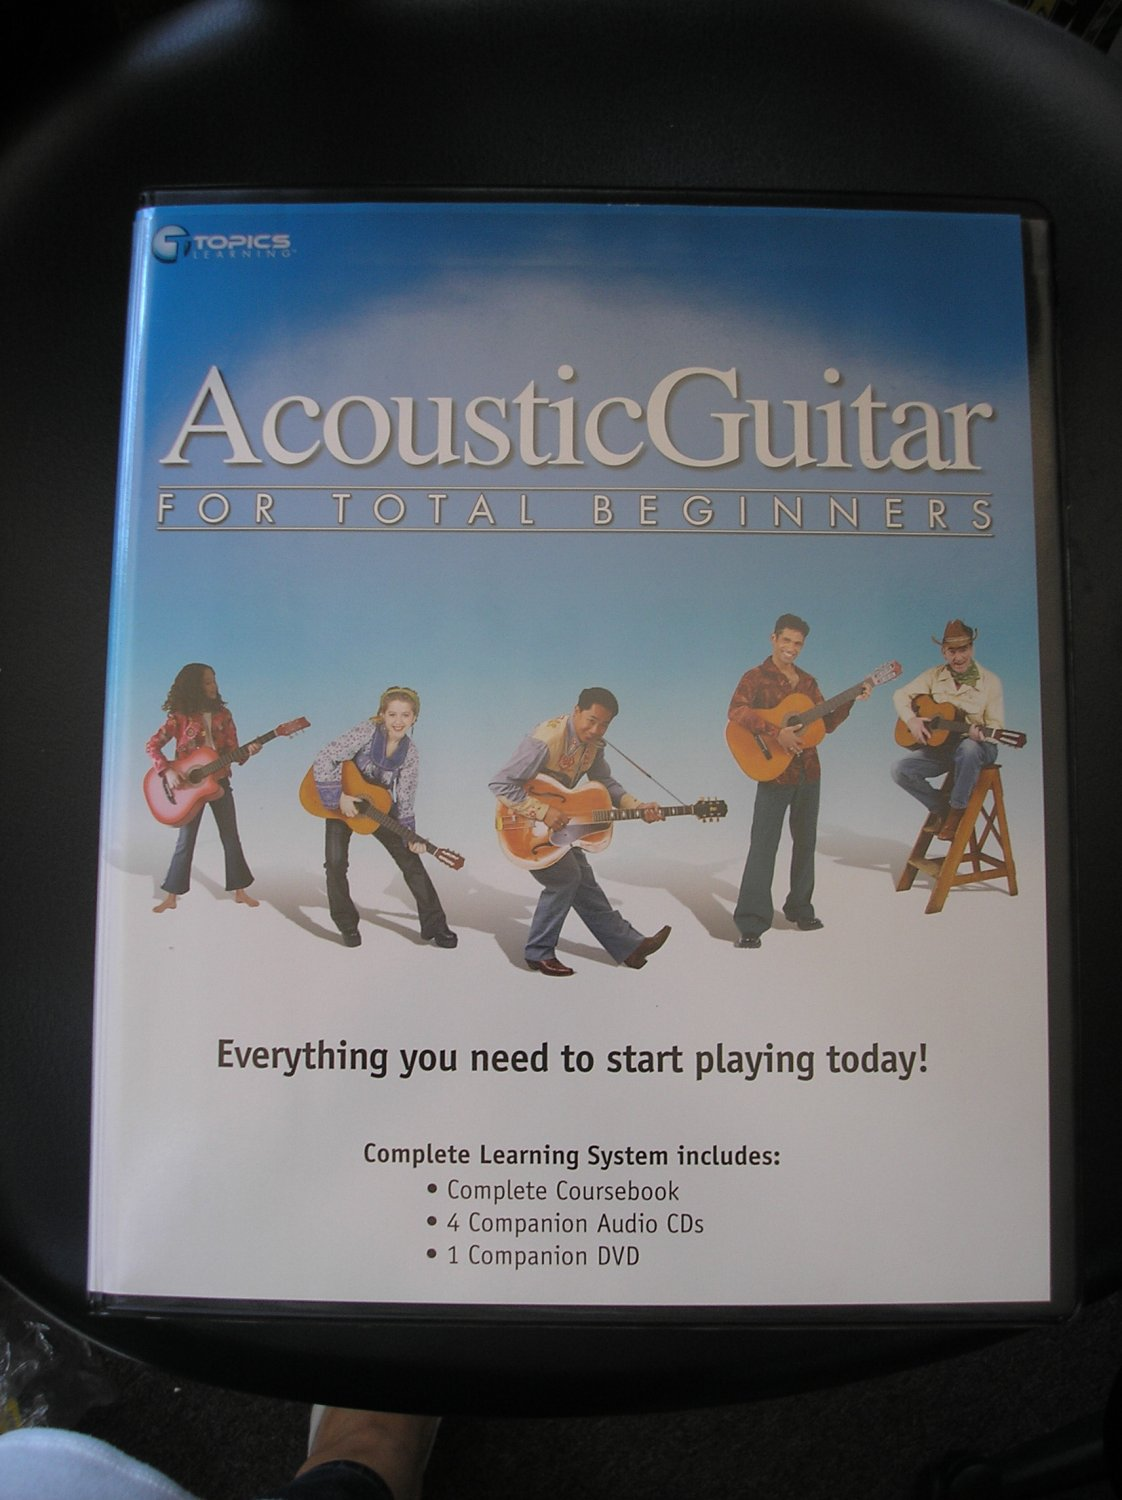 ACOUSTIC GUITAR for TOTAL BEGINNERS 4 CD's/1 DVD & WORKBOOK by Topics Learning